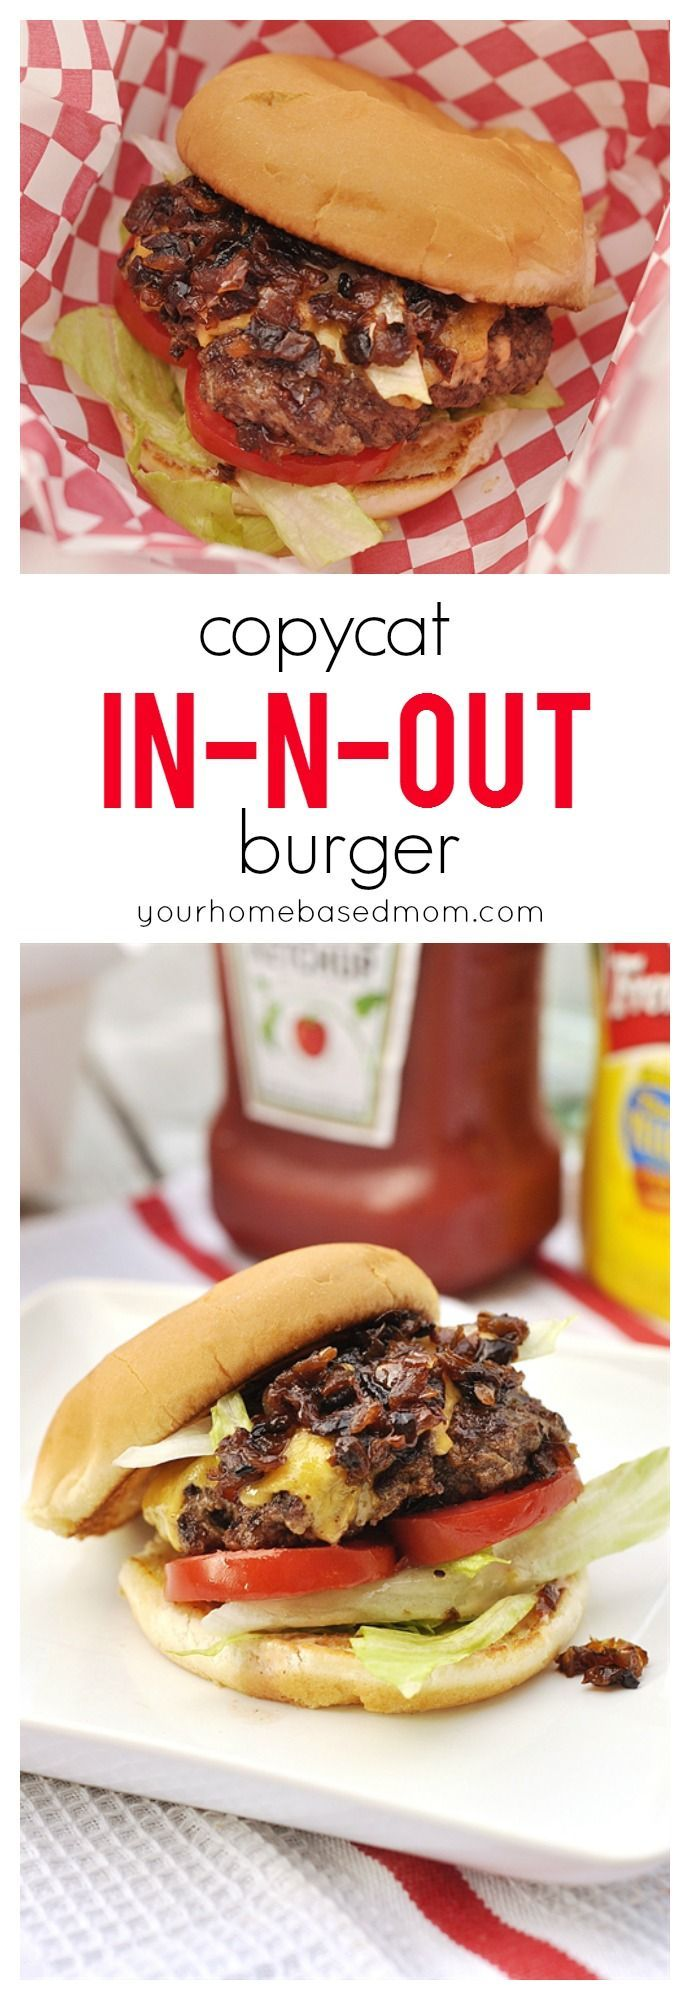 Copycat In-n-Out Burger is so easy to make at home and we think they are better than the real thing!